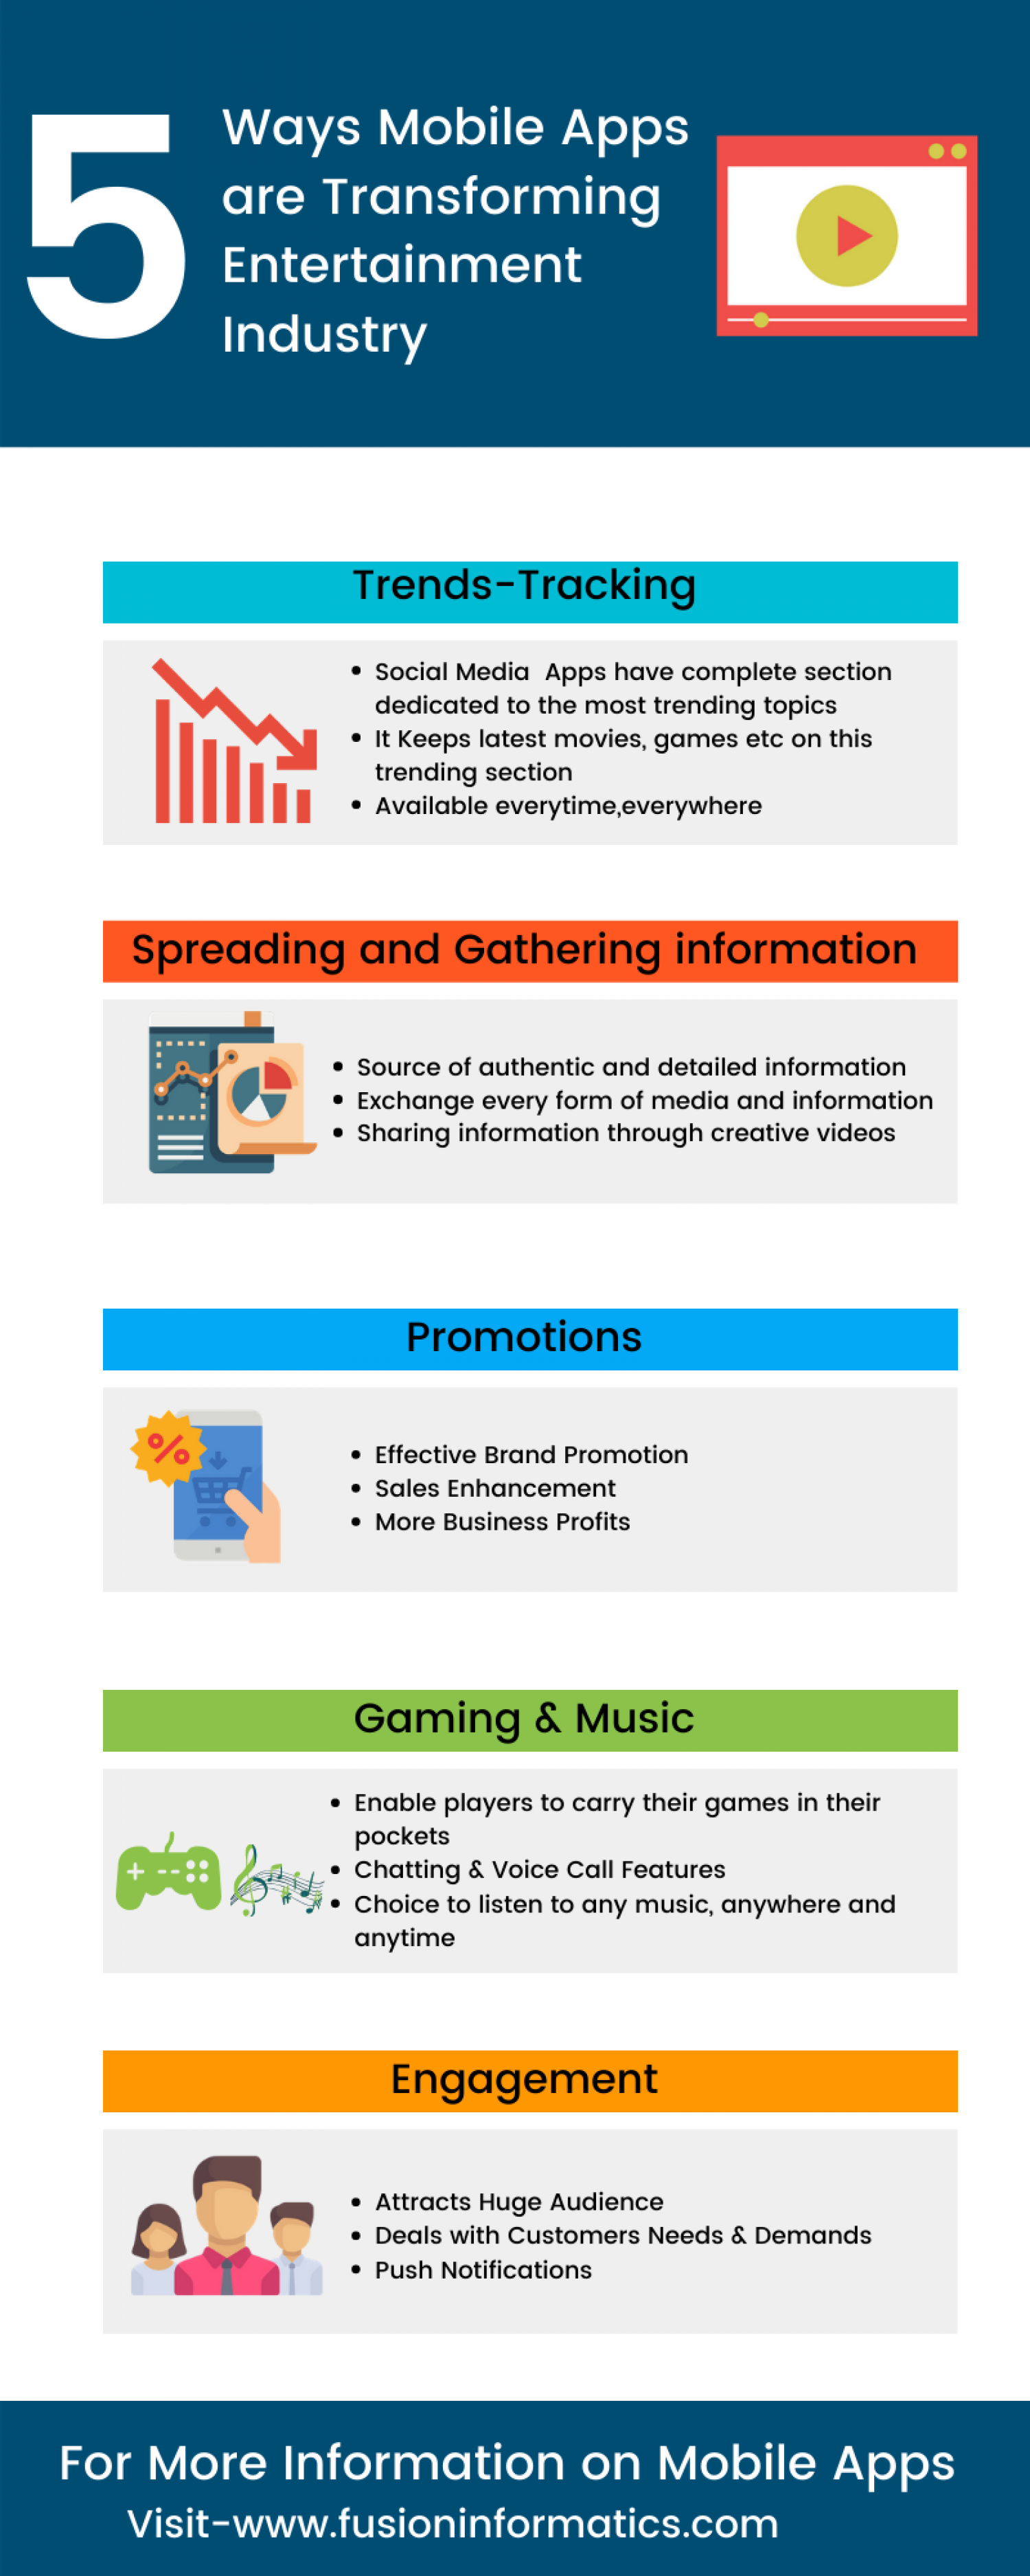 5 ways how Mobile Apps are Transforming Entertainment Industry Infographic